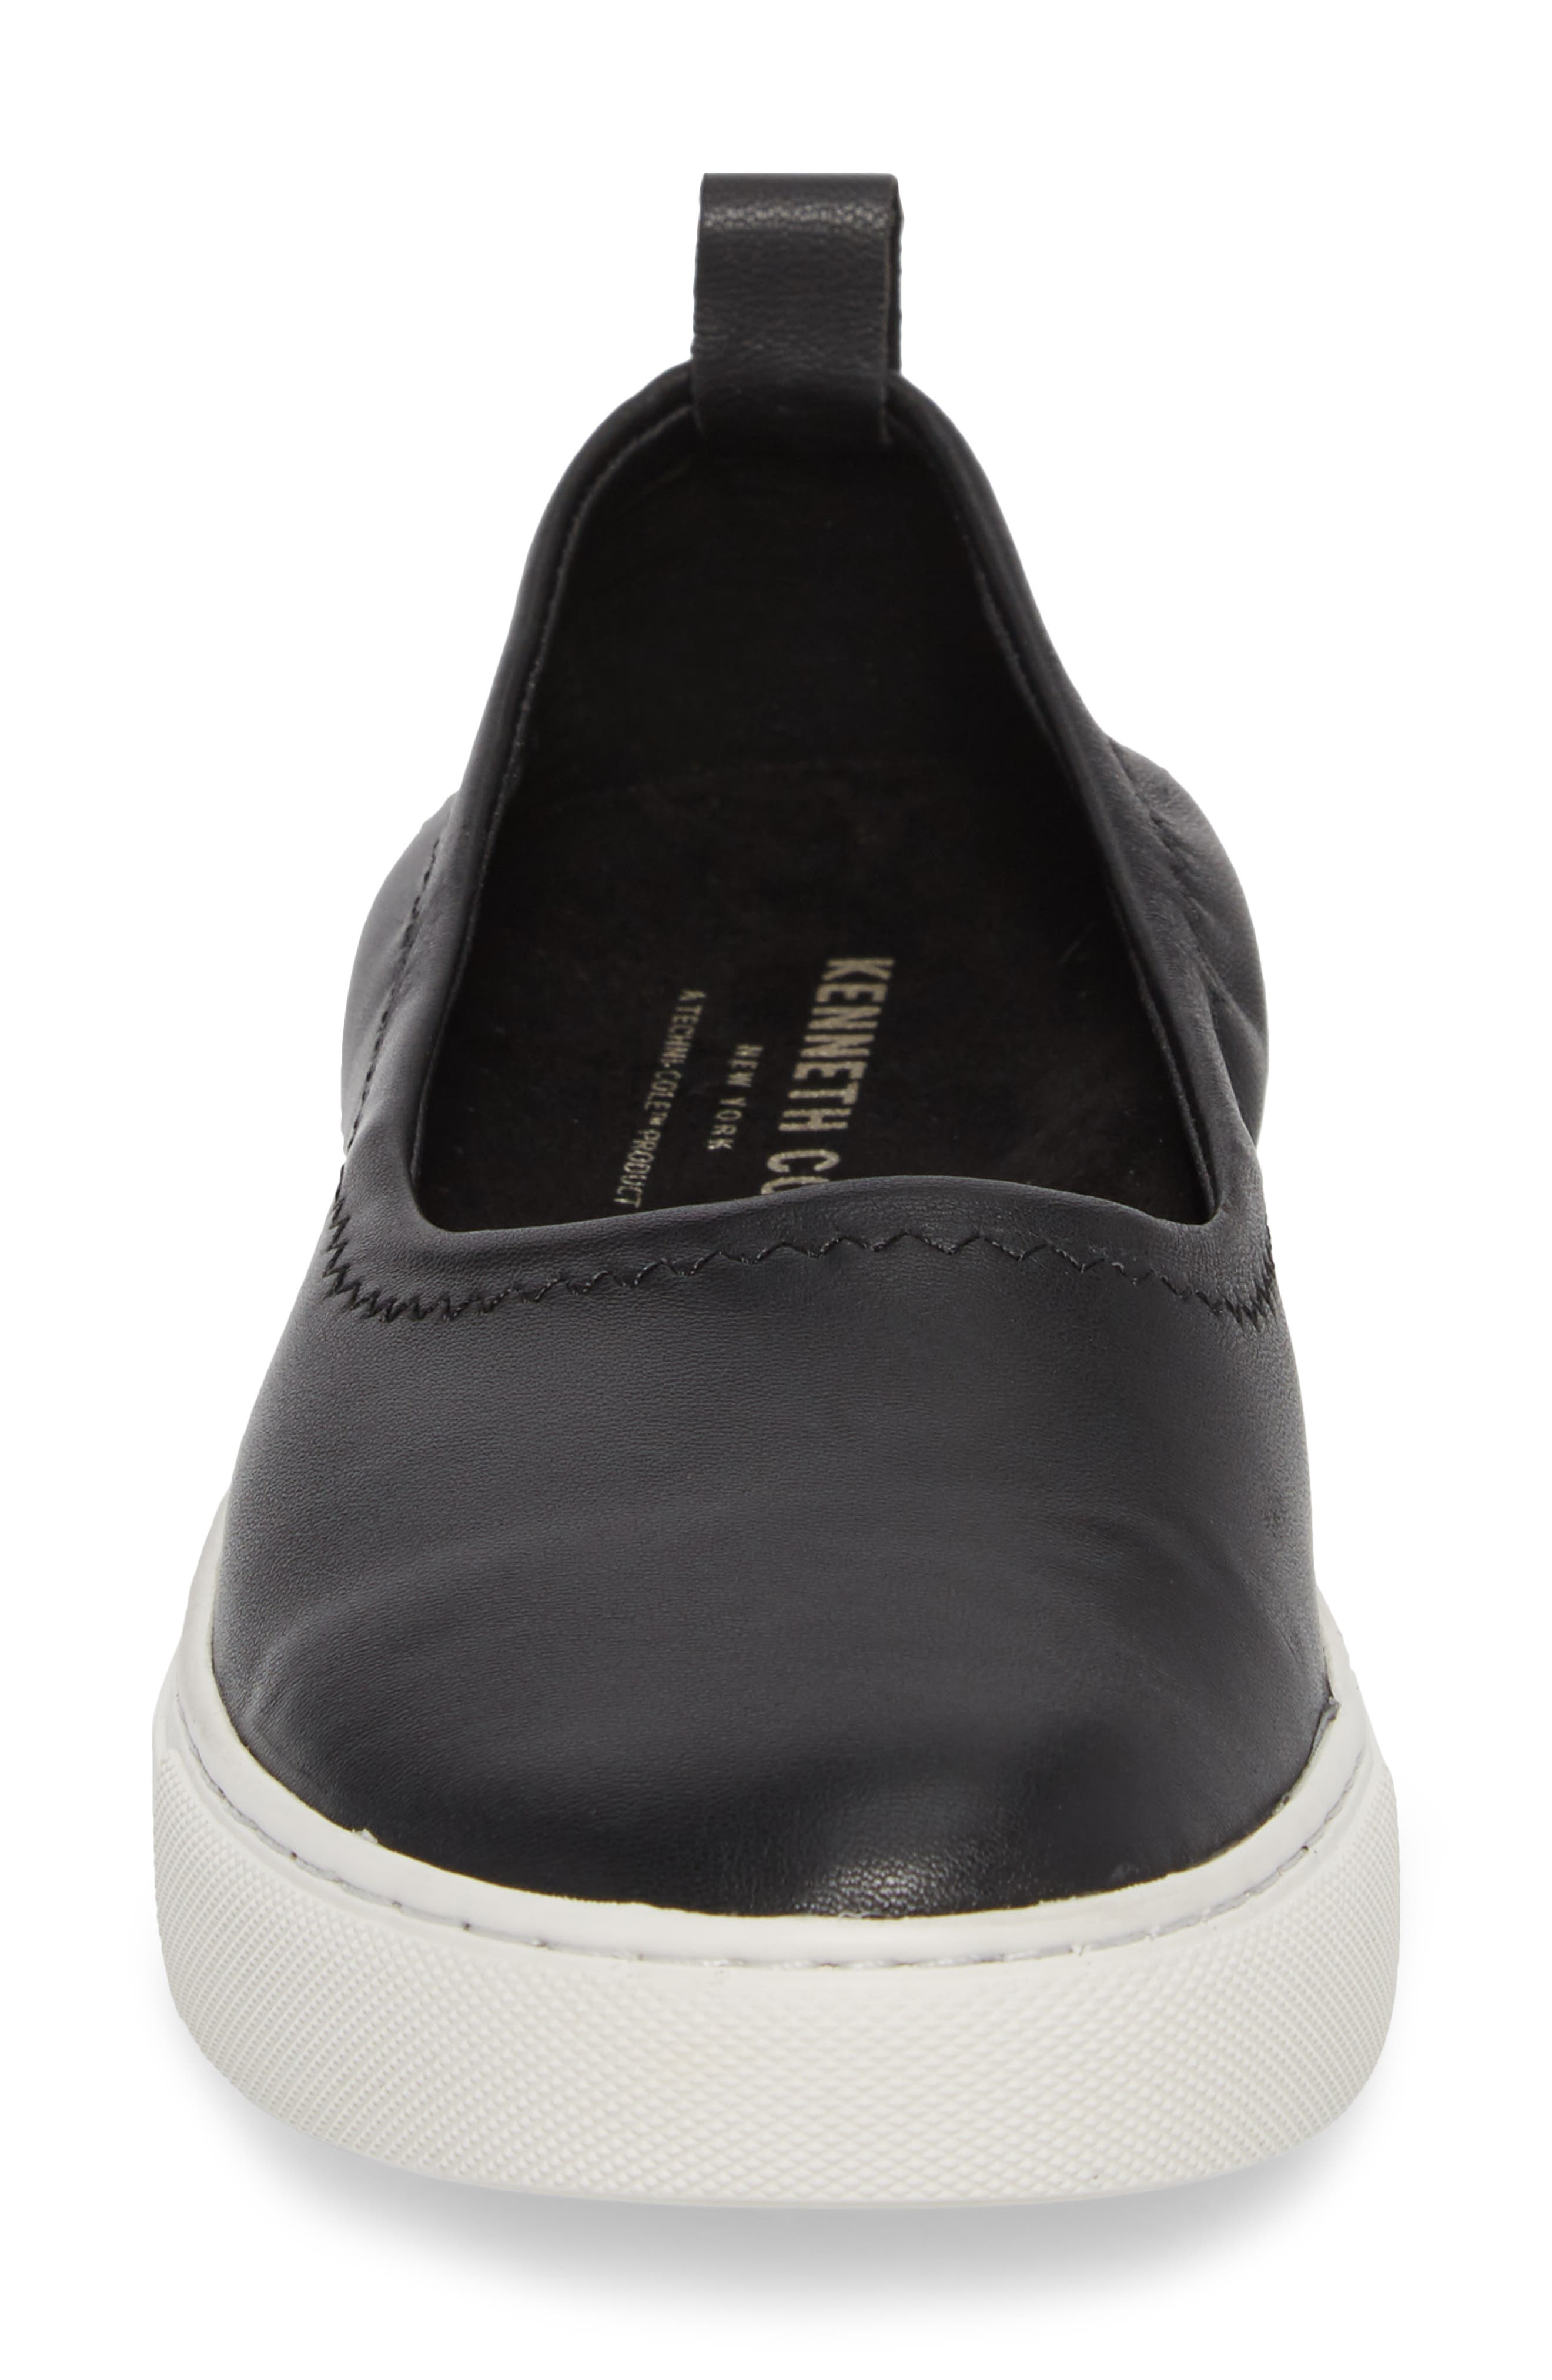 KENNETH COLE NEW YORK,                             Kam Techni-Cole Ballet Flat,                             Alternate thumbnail 4, color,                             001